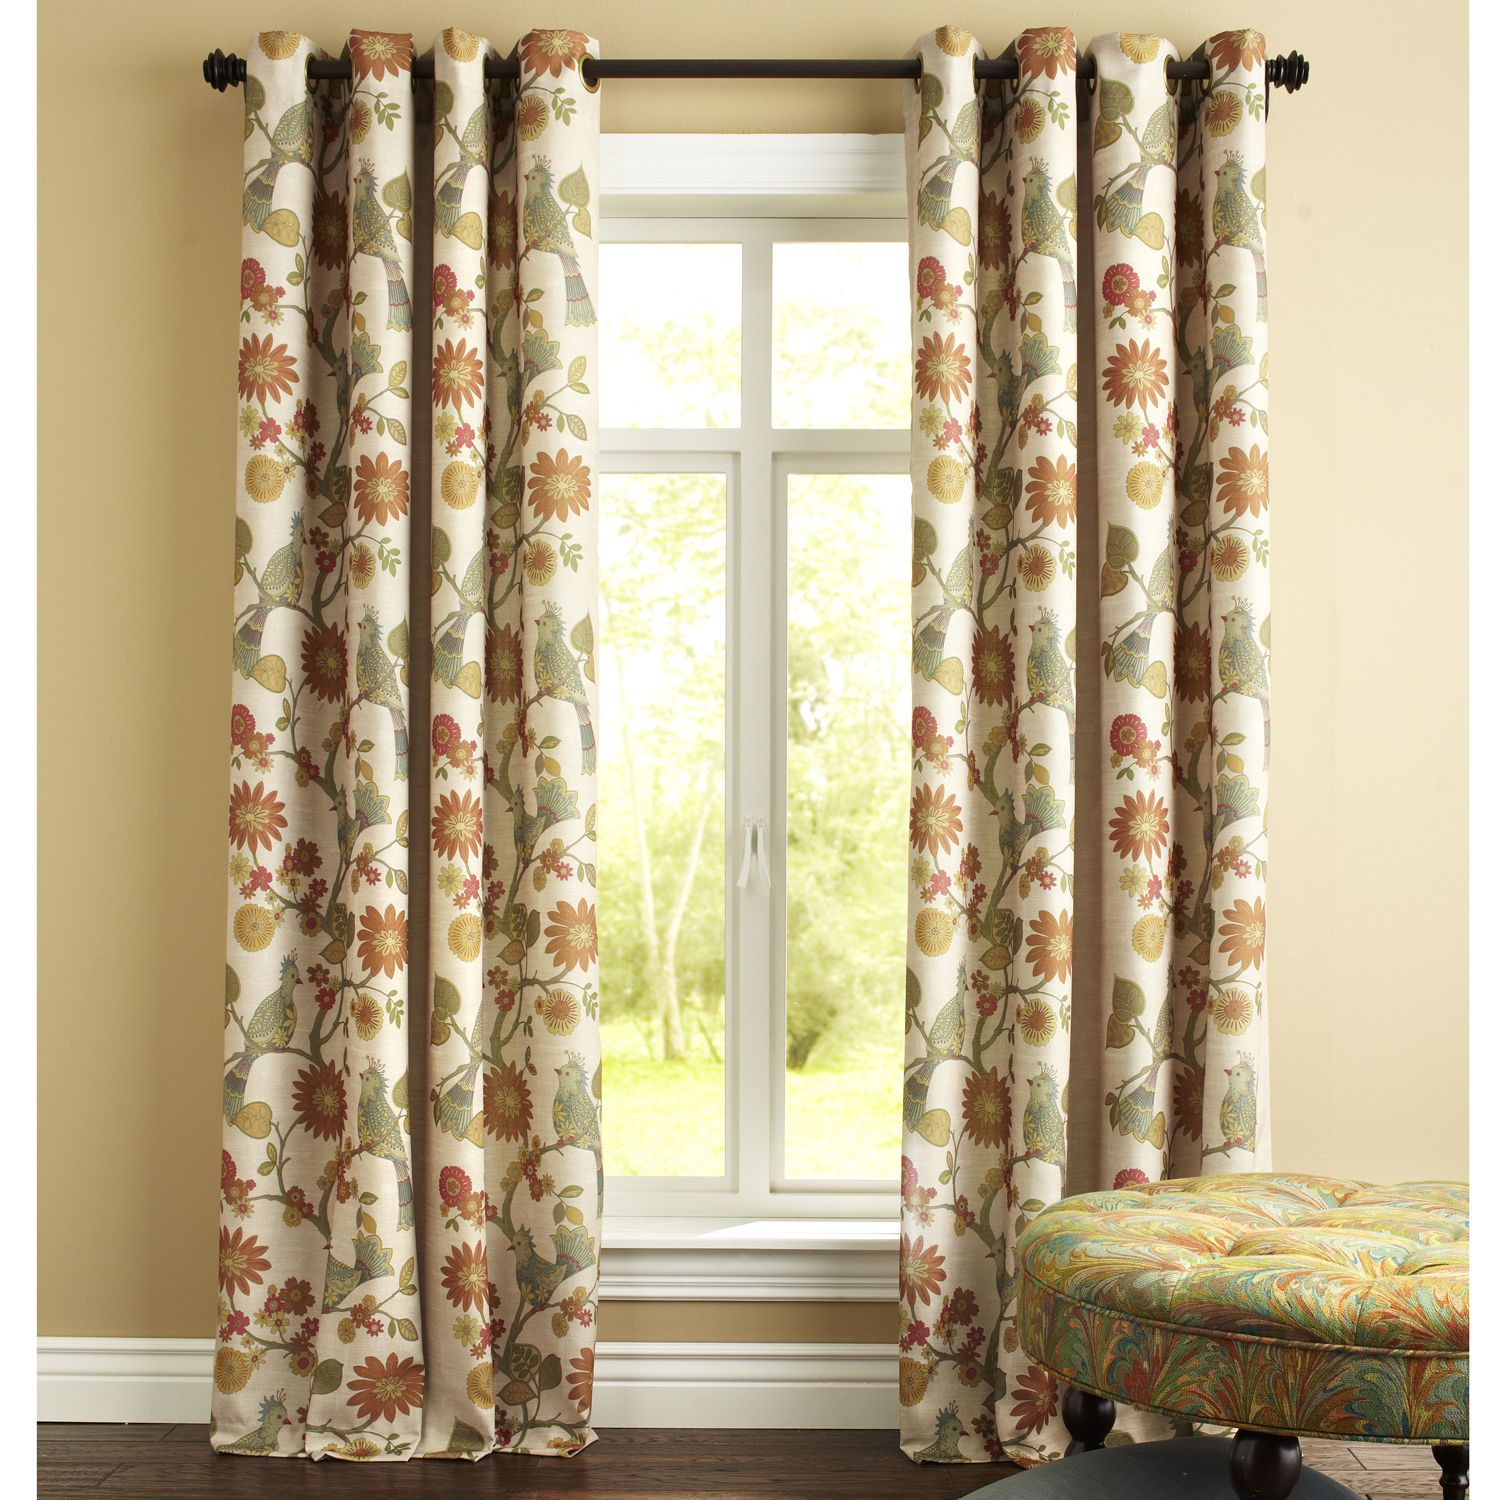 Soprano Curtain Pier 1 Imports Curtains Country Style